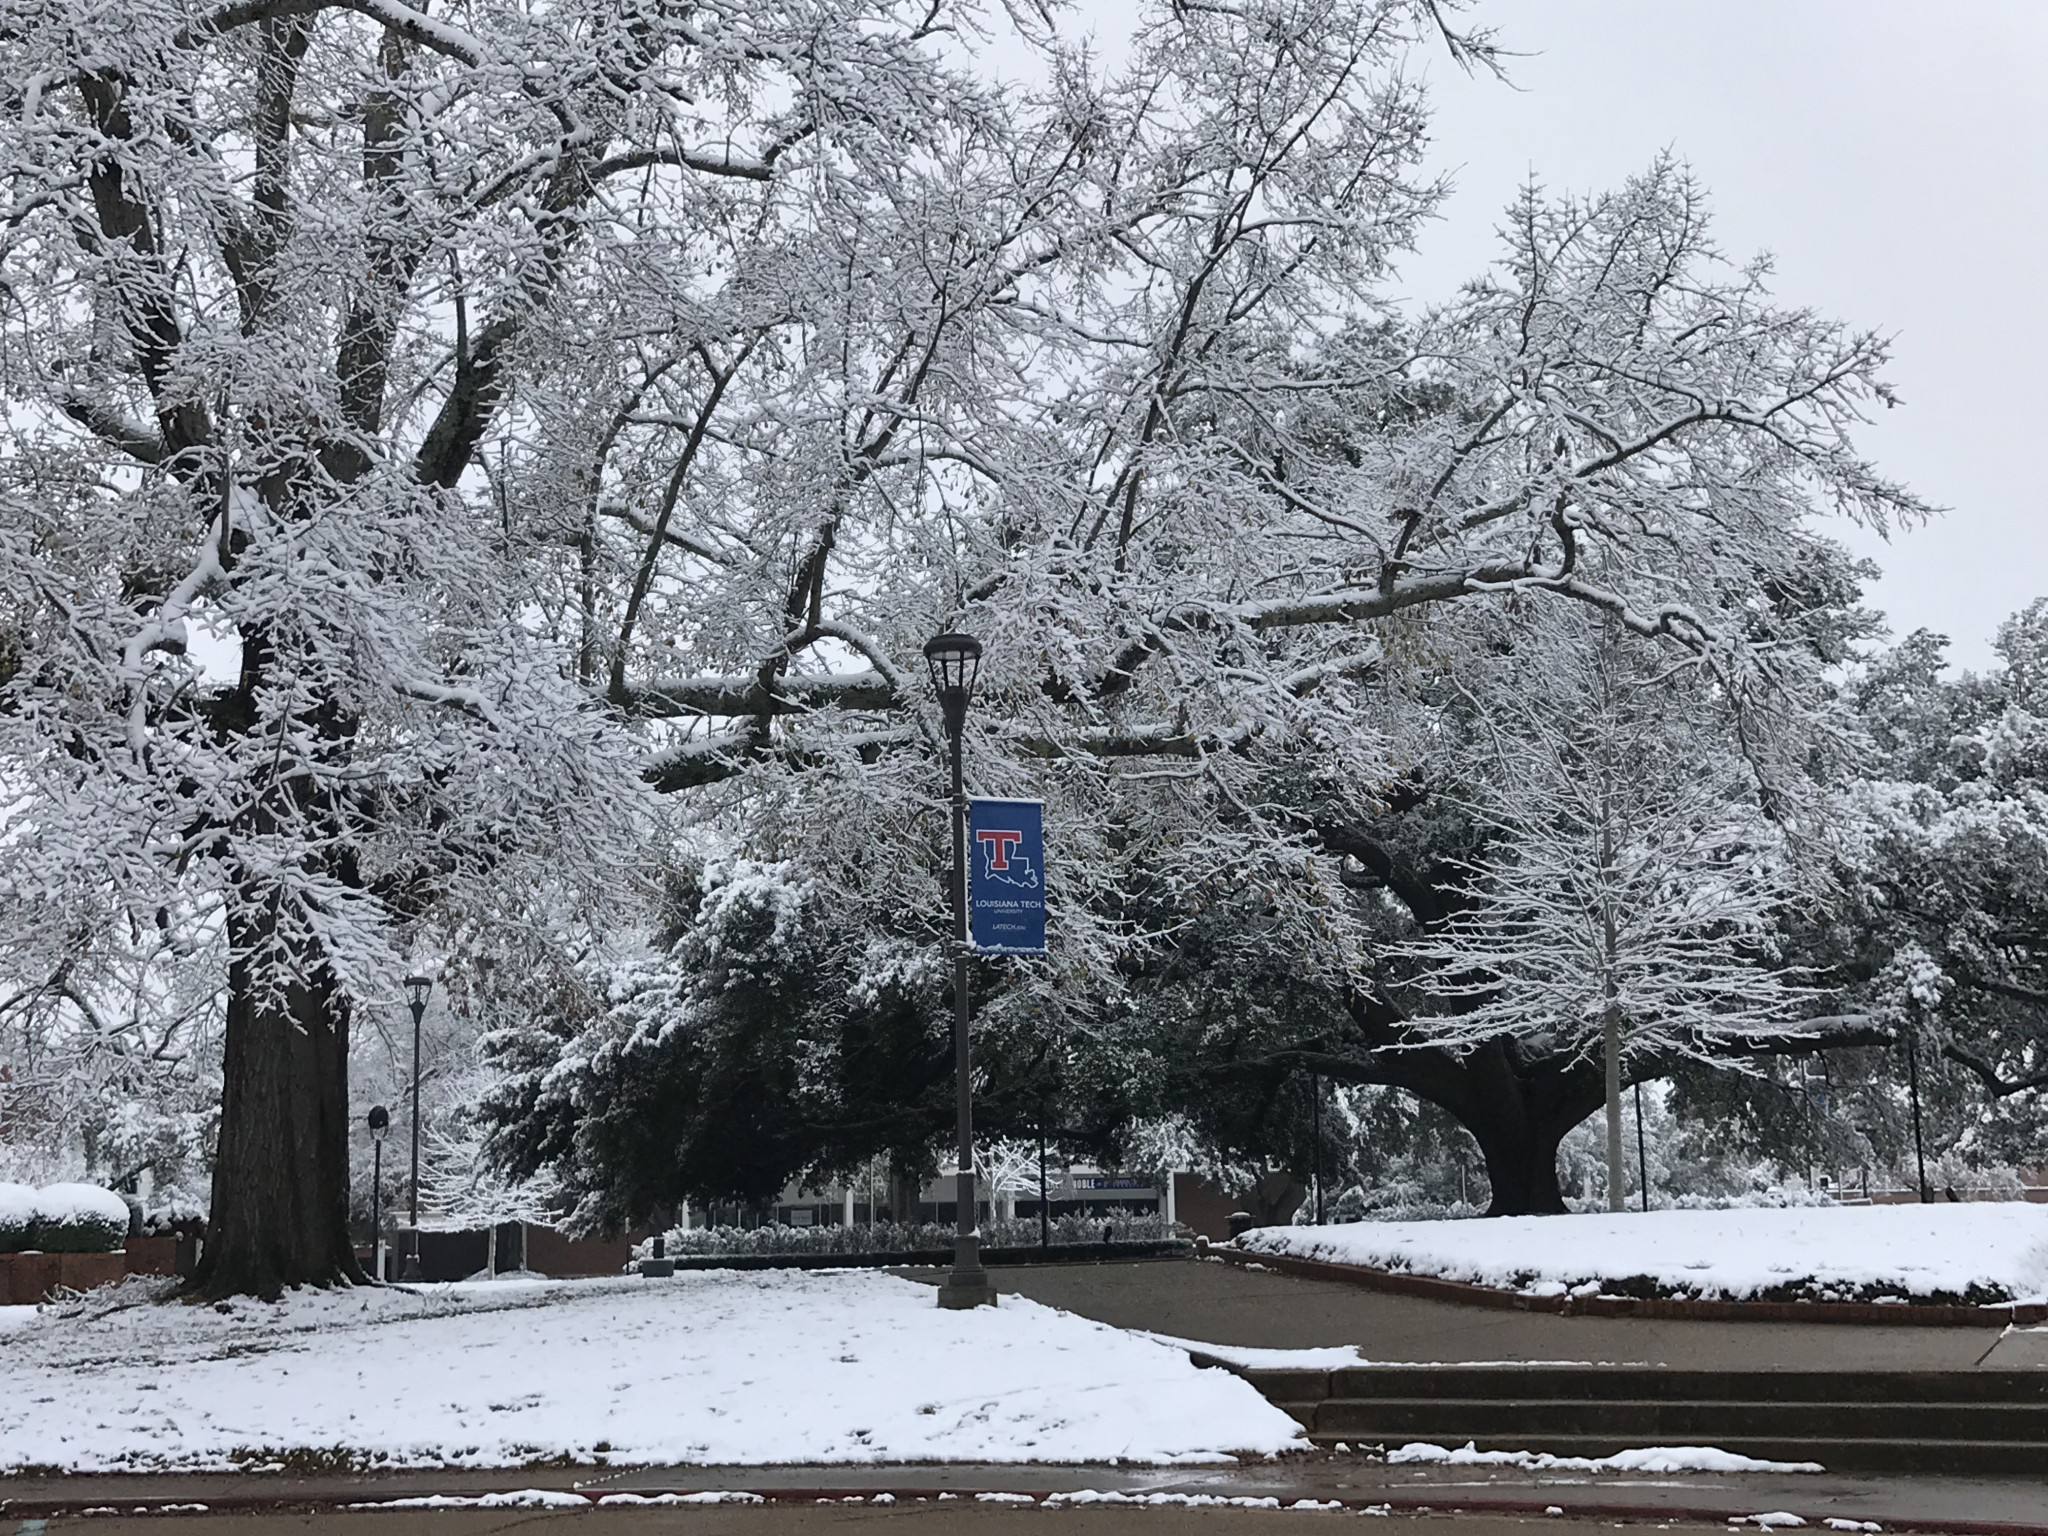 Scenes from the Quad area of Louisiana Tech campus - Leader photo by Caleb Daniel